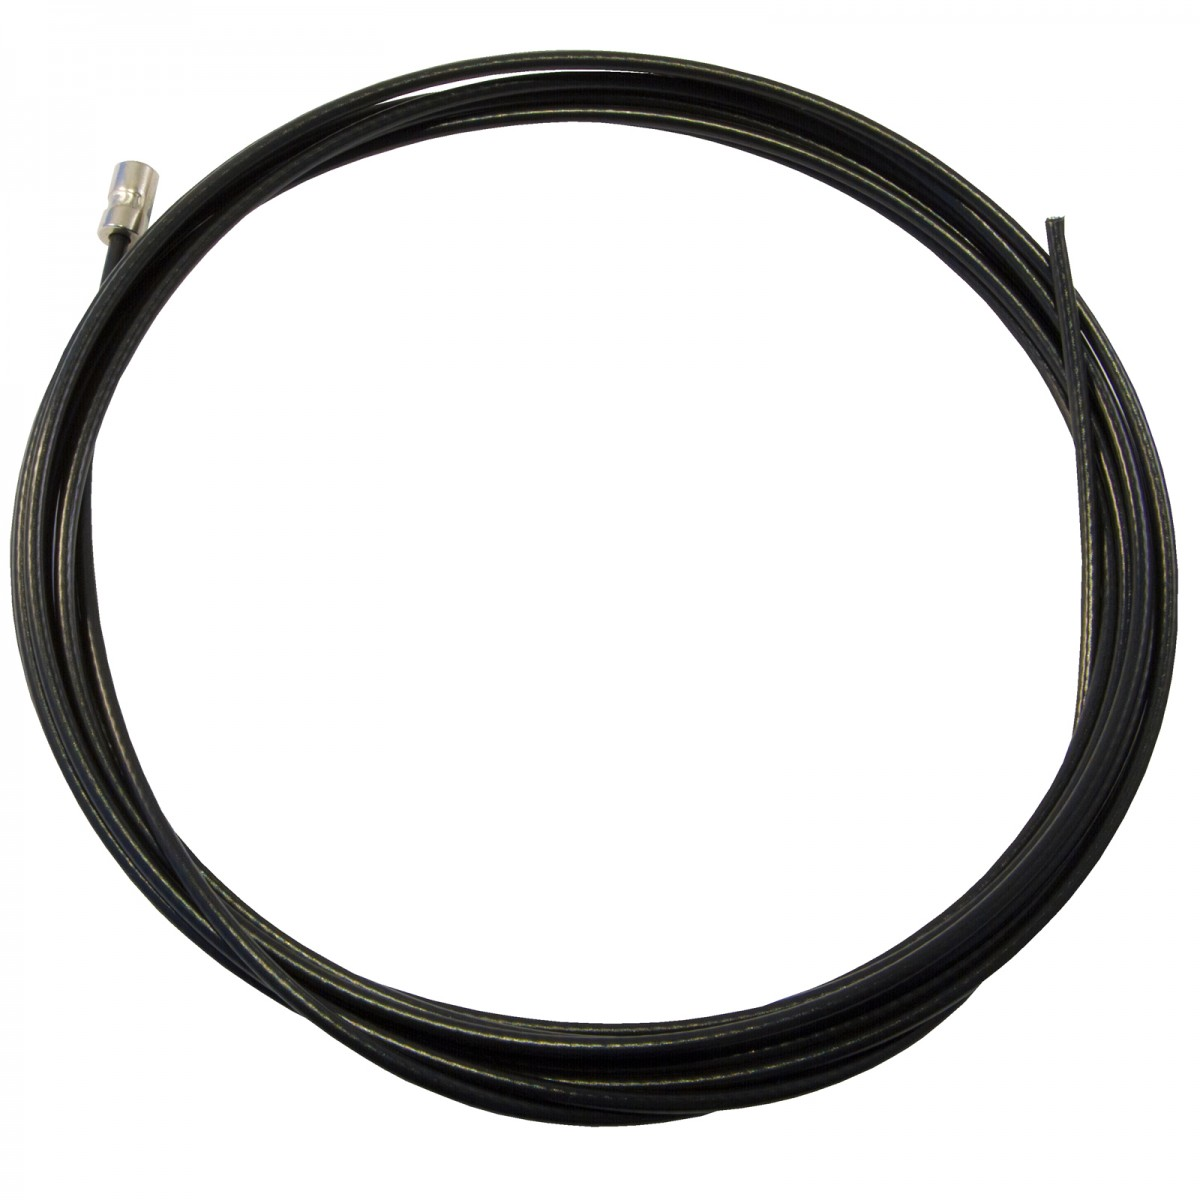 Glide70 Replacement Cable Wire